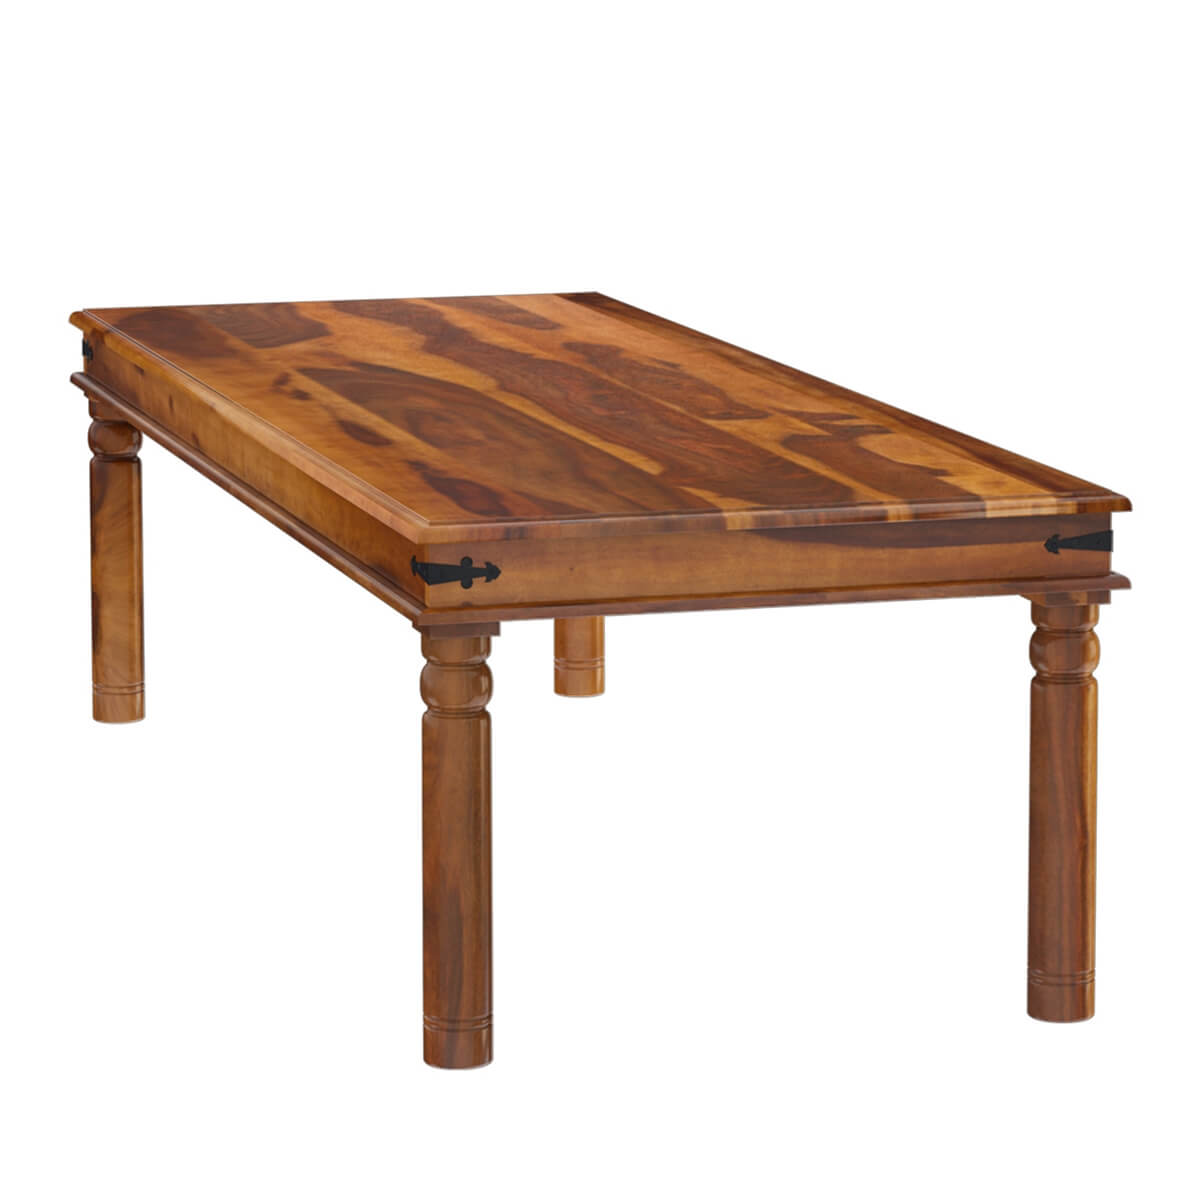 san francisco large rustic solid wood dining table on solid wood dining table id=58387